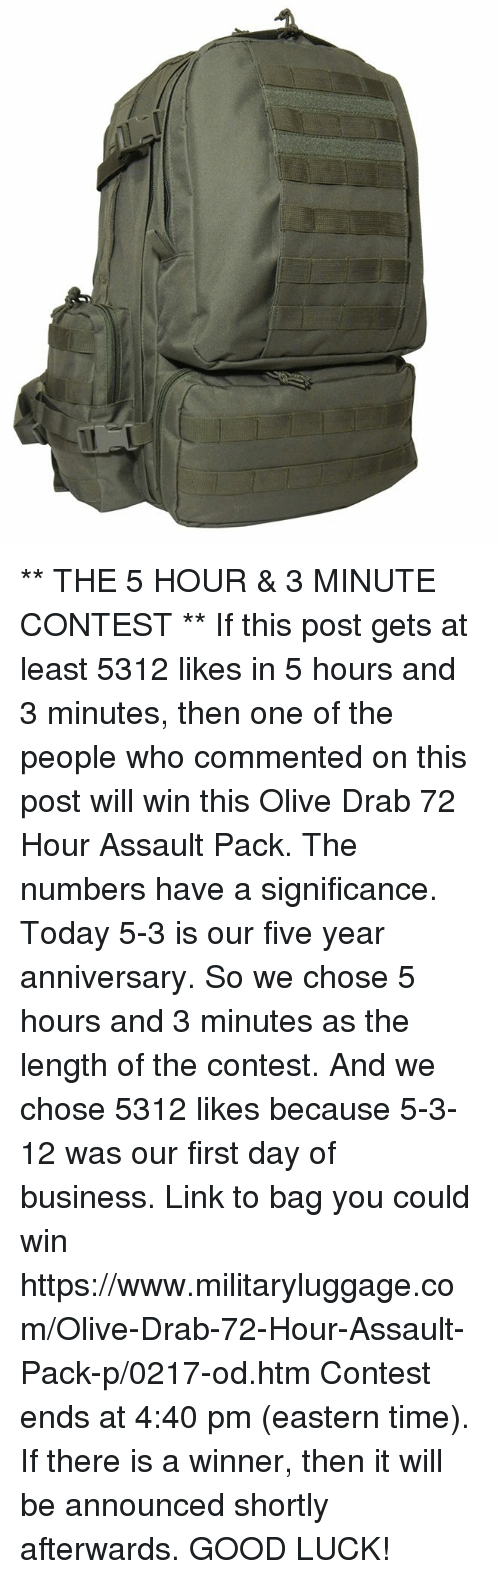 Memes, Business, and Good: ** THE 5 HOUR & 3 MINUTE CONTEST **  If this post gets at least 5312 likes in 5 hours and 3 minutes, then one of the people who commented on this post will win this Olive Drab 72 Hour Assault Pack.  The numbers have a significance.  Today 5-3 is our five year anniversary.  So we chose 5 hours and 3 minutes as the length of the contest.  And we chose 5312 likes because 5-3-12 was our first day of business.  Link to bag you could win https://www.militaryluggage.com/Olive-Drab-72-Hour-Assault-Pack-p/0217-od.htm  Contest ends at 4:40 pm (eastern time).  If there is a winner, then it will be announced shortly afterwards.  GOOD LUCK!